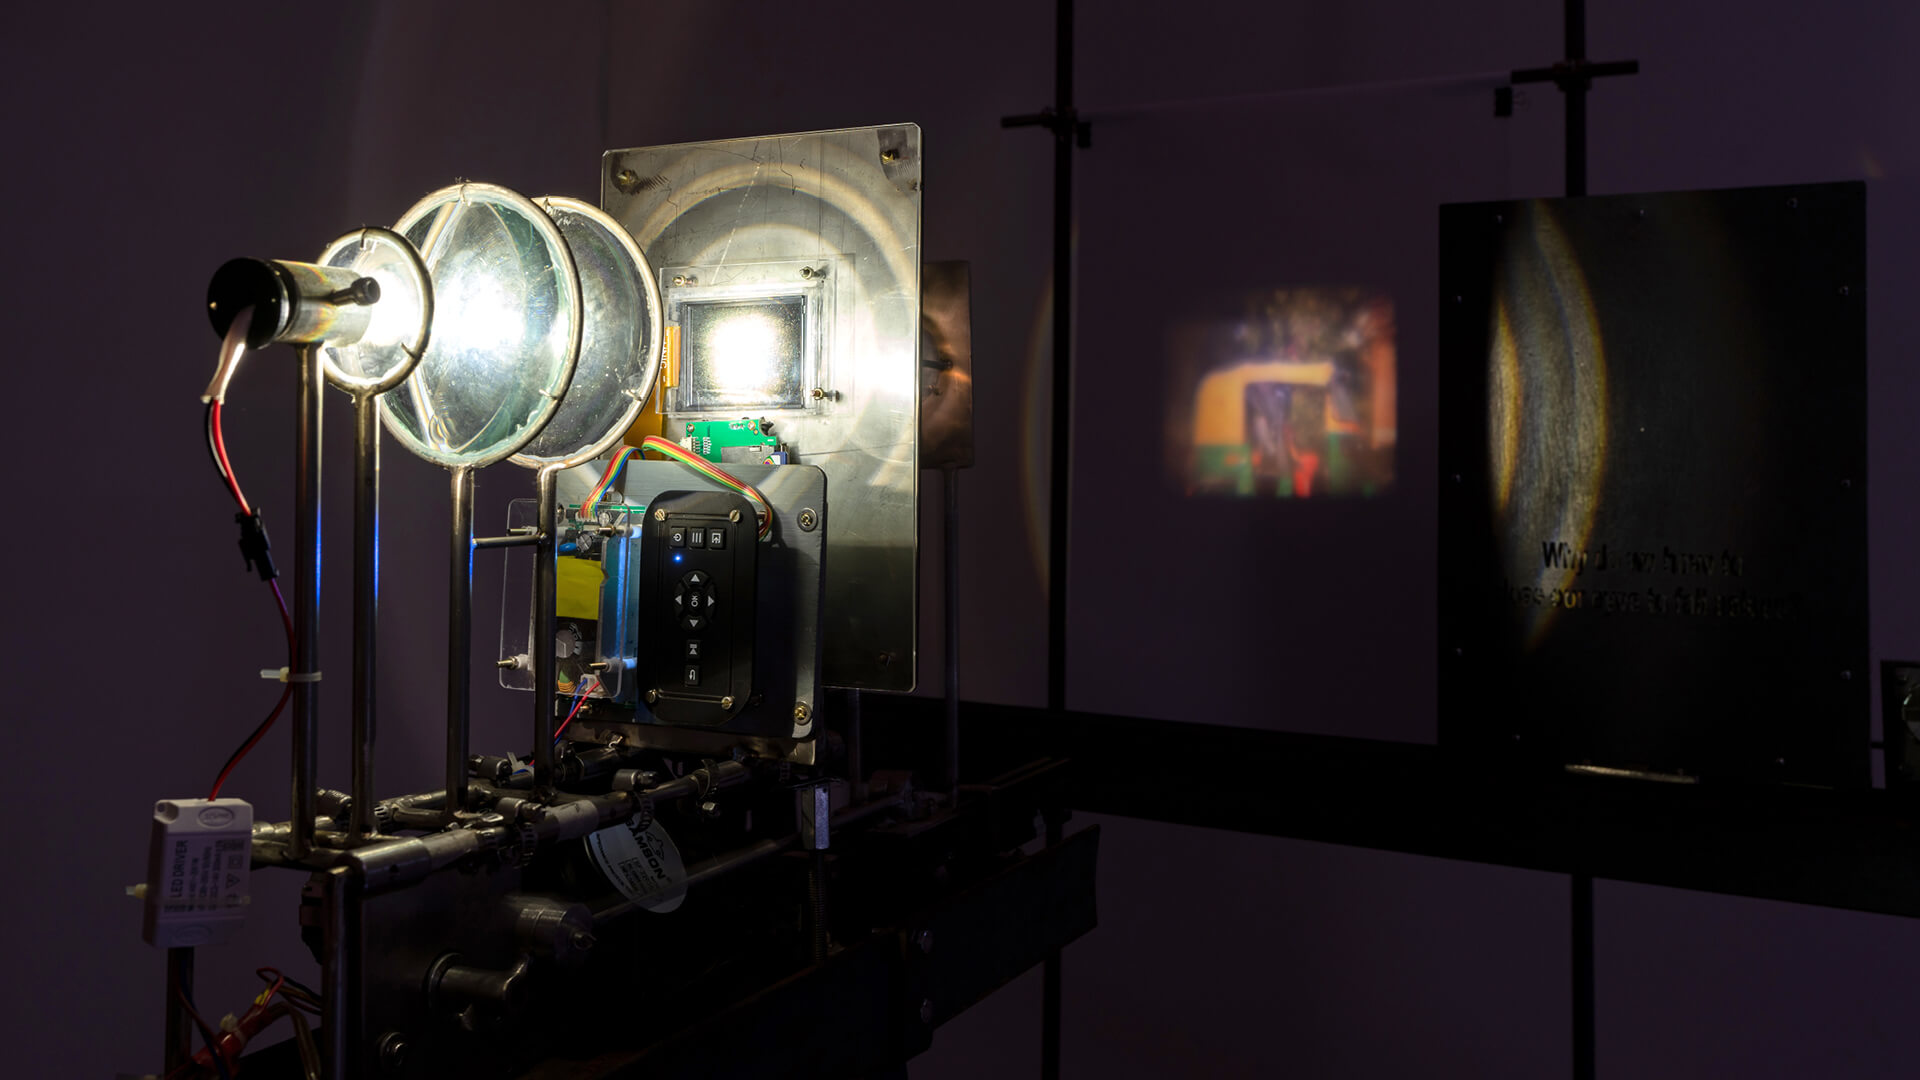 Susanta Mandal, Refrain, iron, steel, mechanical contraption, LCD screen, motherboard, light, motor and programming circuit, 2019 | Counter-Canon, Counter-Culture | Nancy Adajania | Serendipity Arts Festival | STIRworld